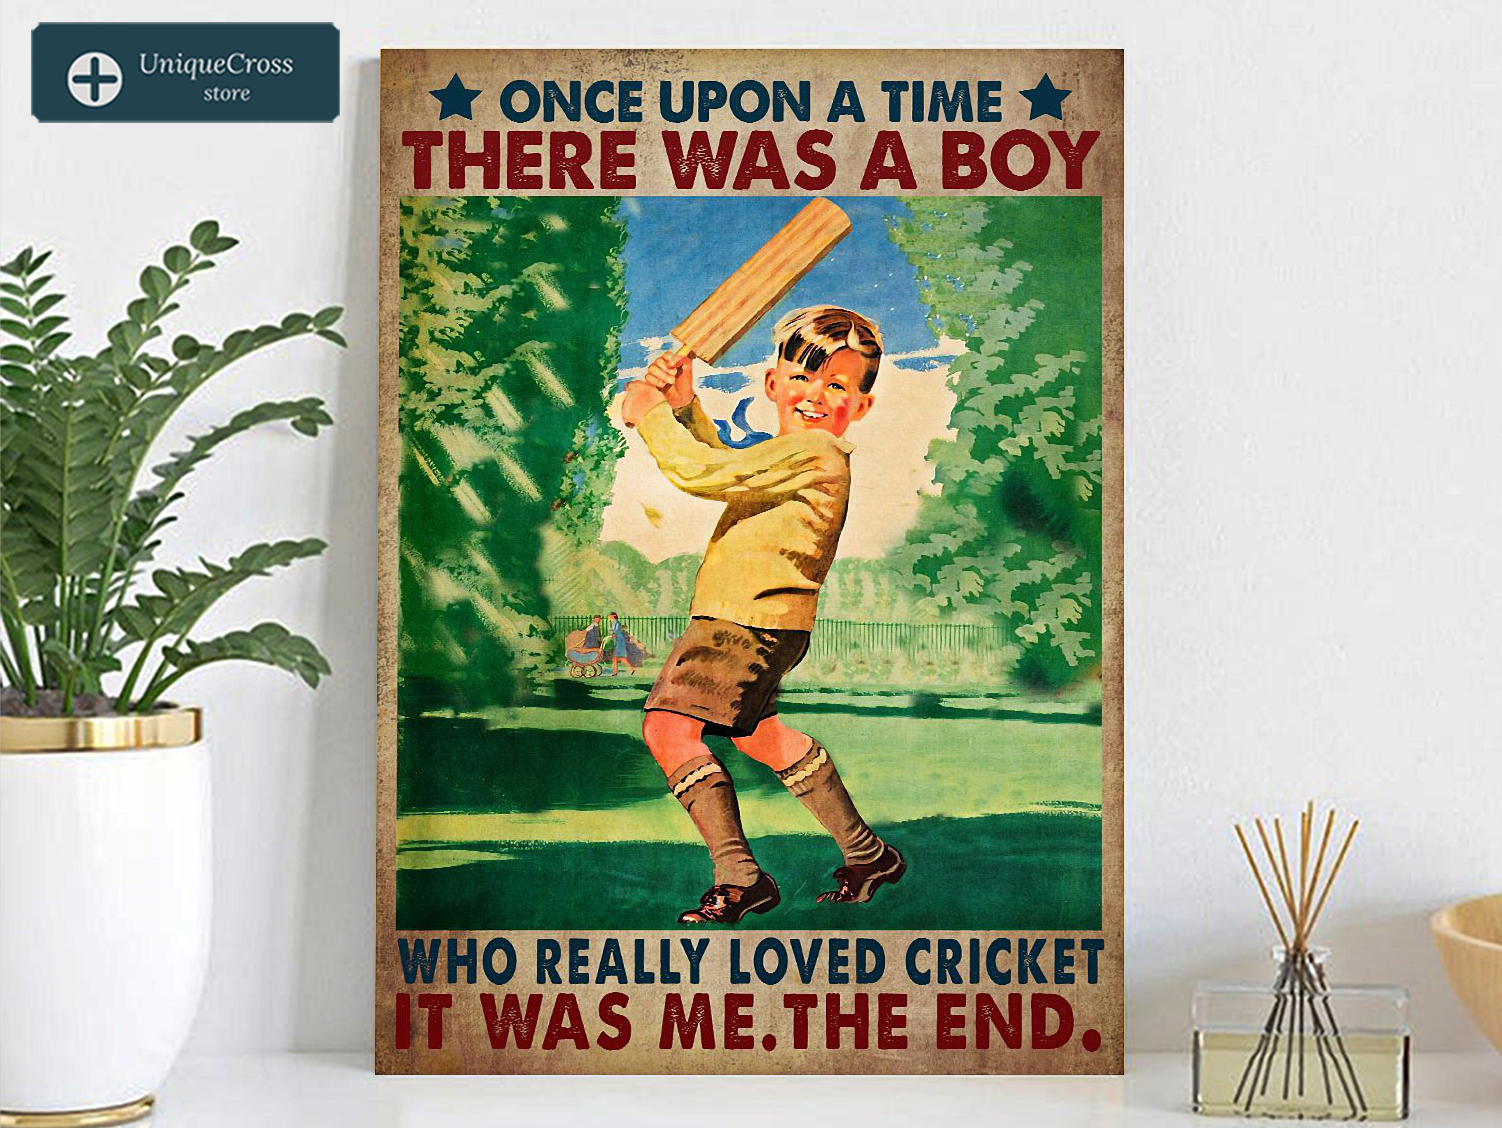 Once upon a time there was a boy who really loved cricket poster